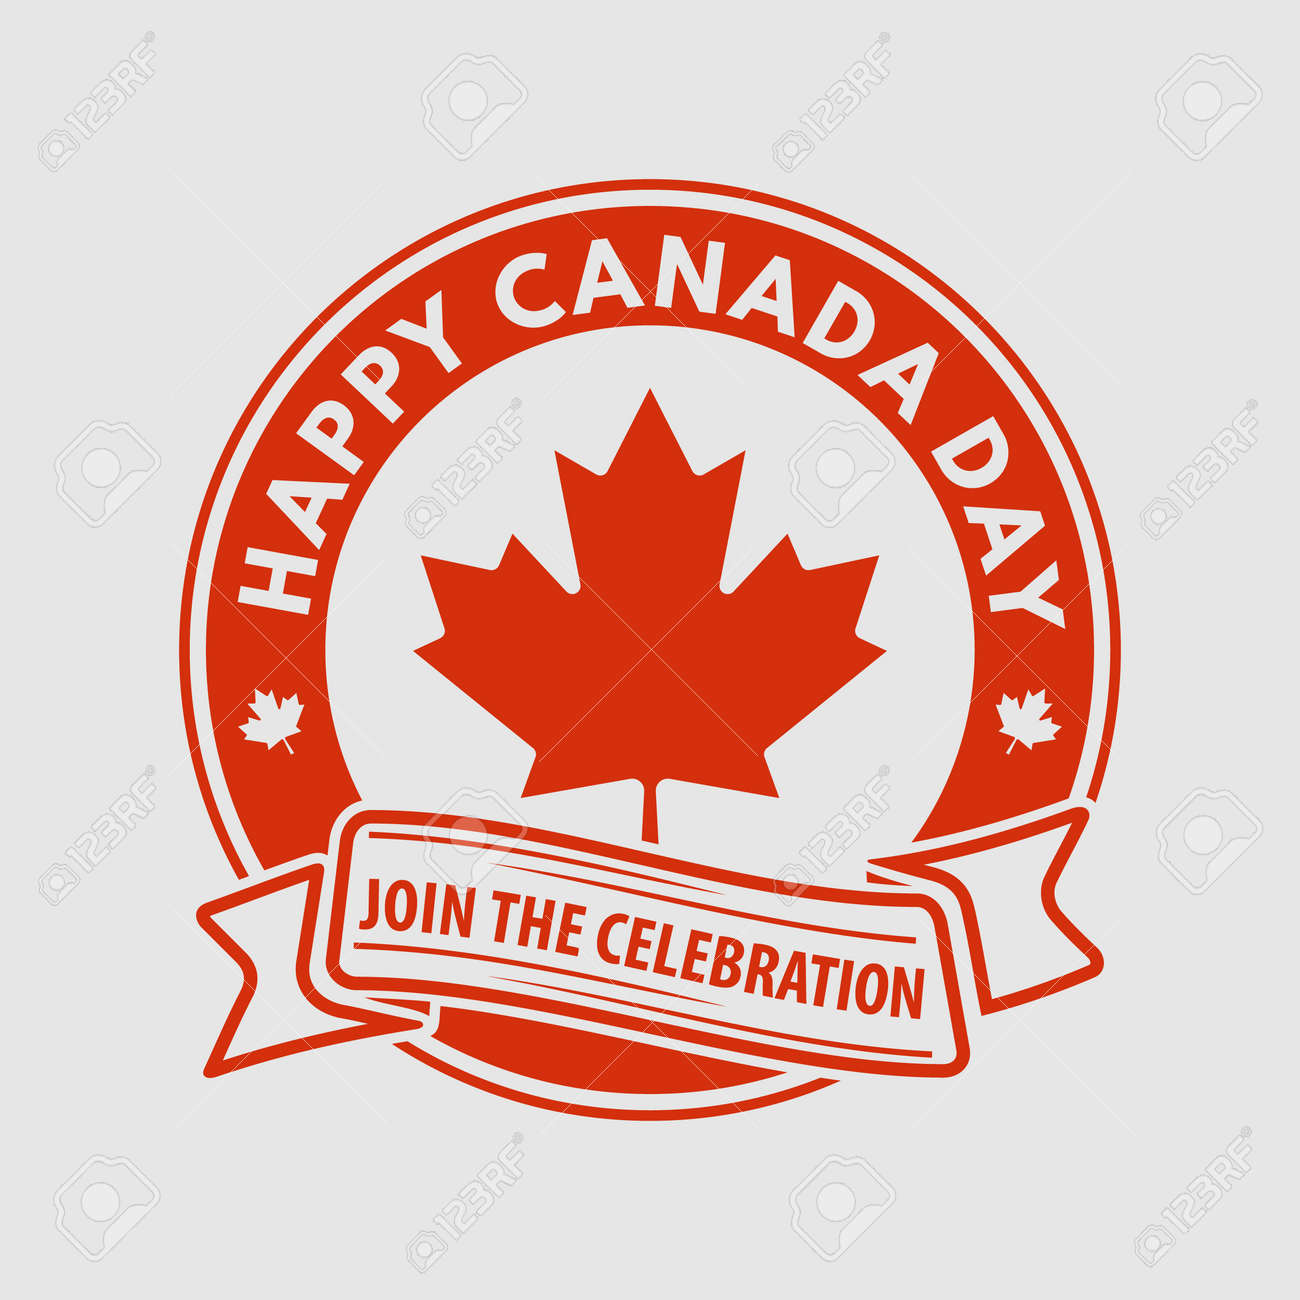 Happy Canada Day greeting card design concept. - 170170795